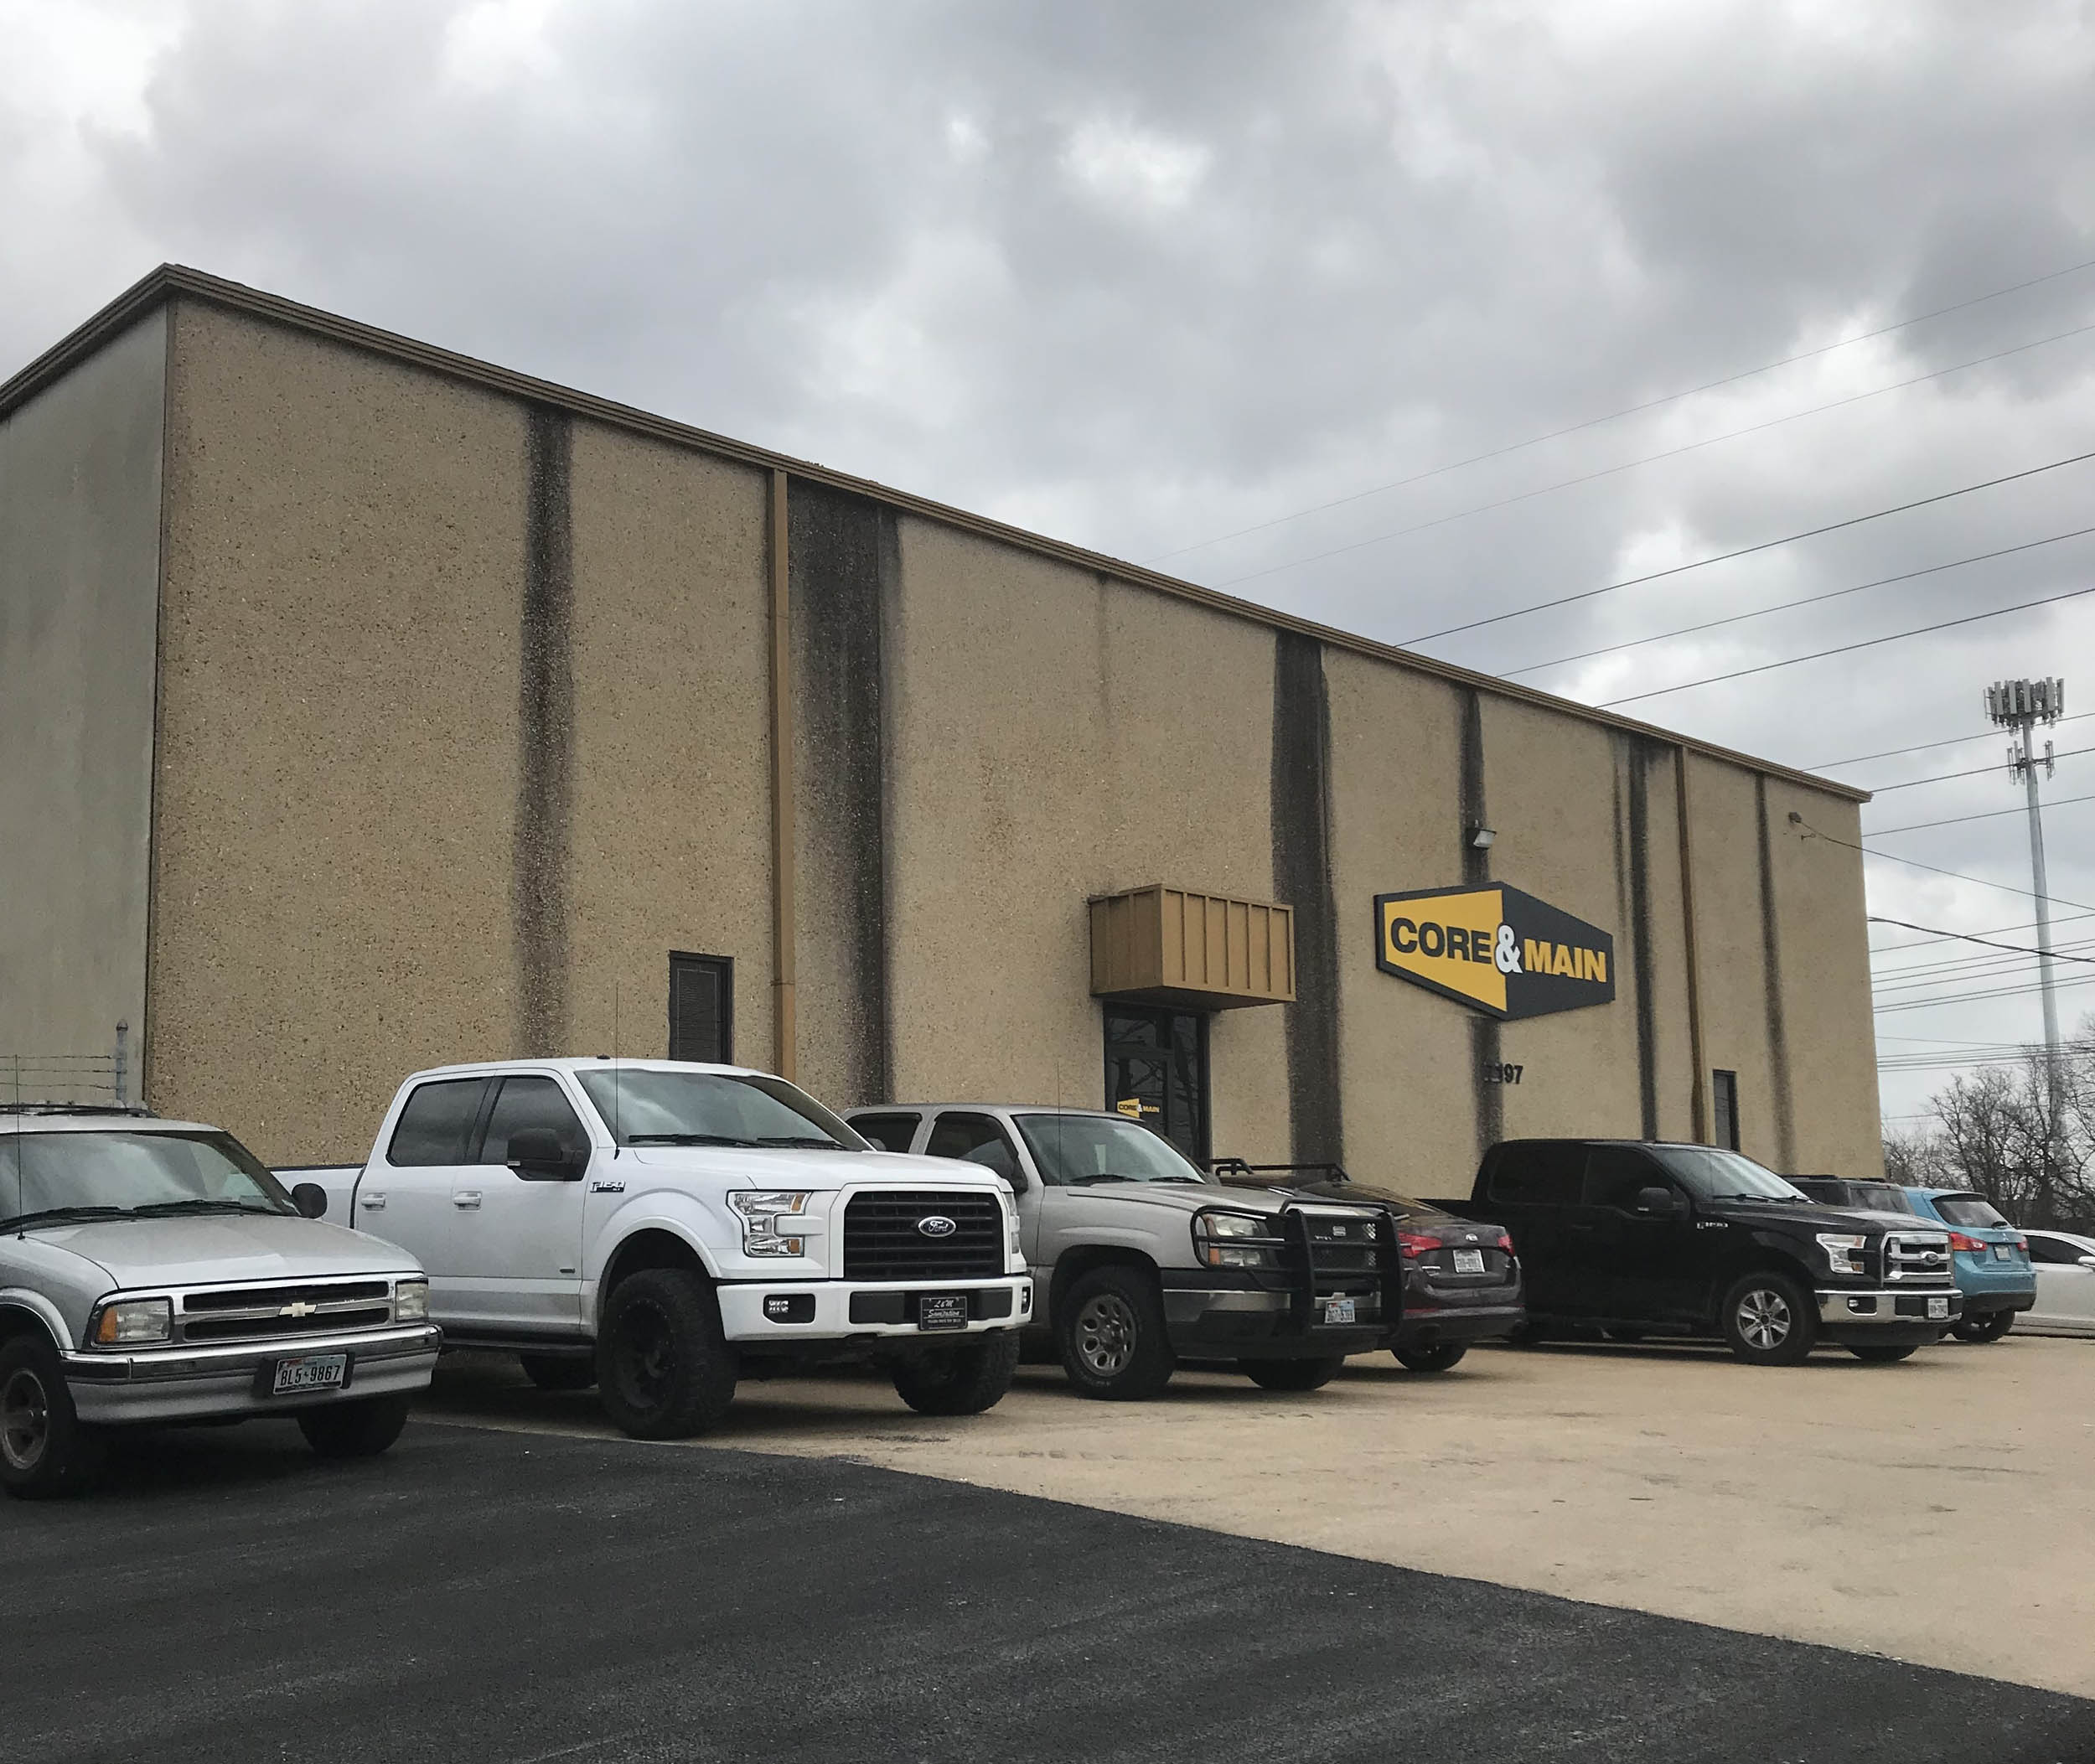 Richland Hills, TX - Core and Main